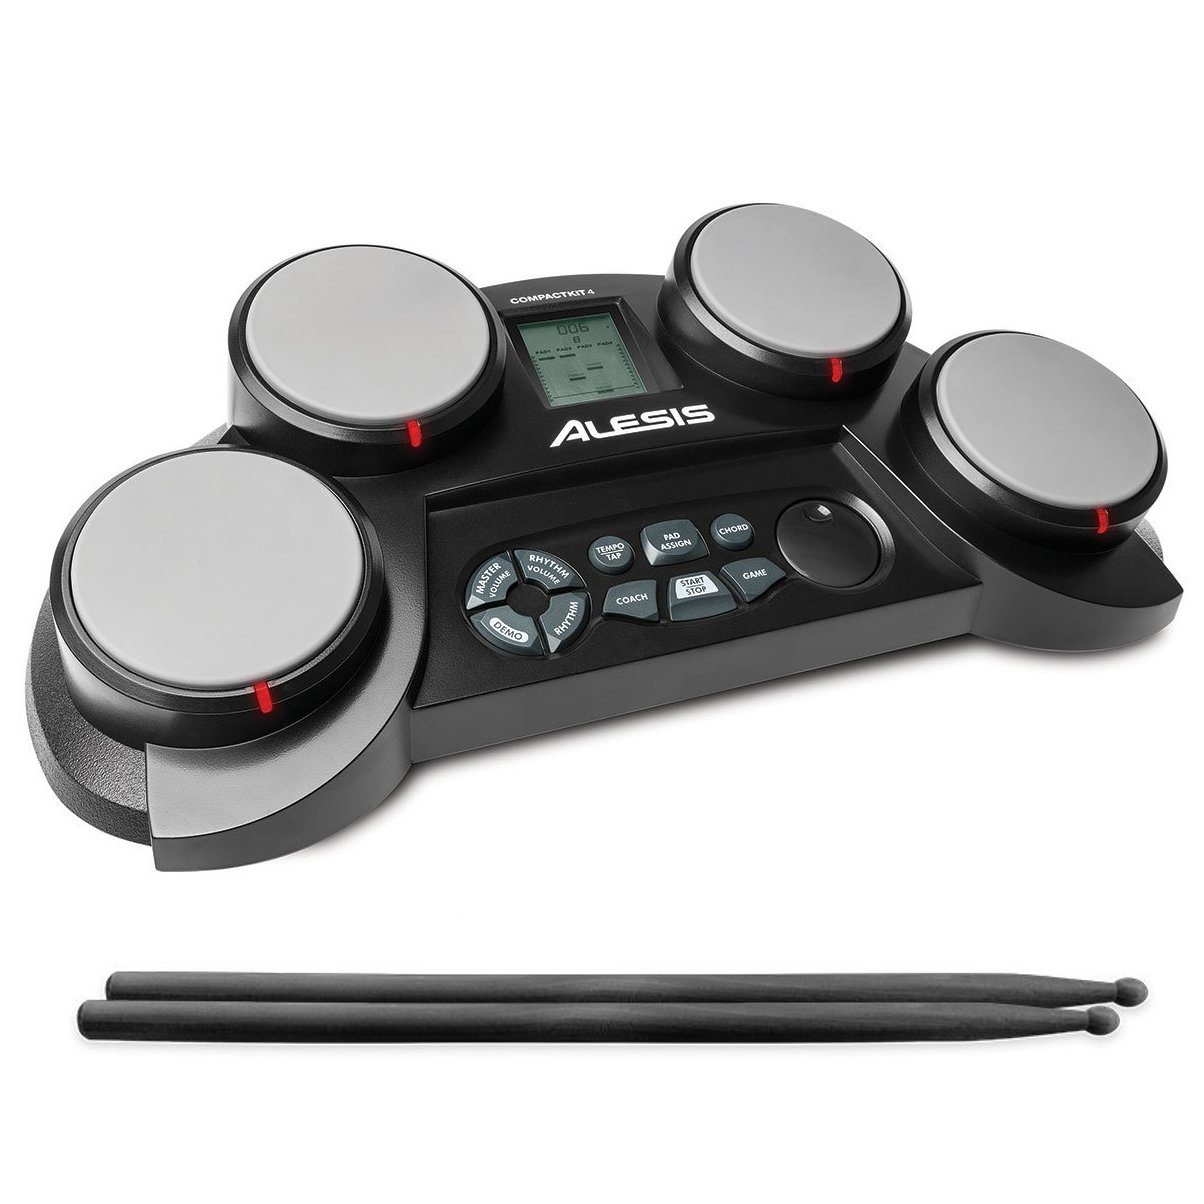 Alesis CompactKit 4 | Portable 4-Pad Tabletop Electronic Drum Kit with Drumsticks & Built-In Learning Tools